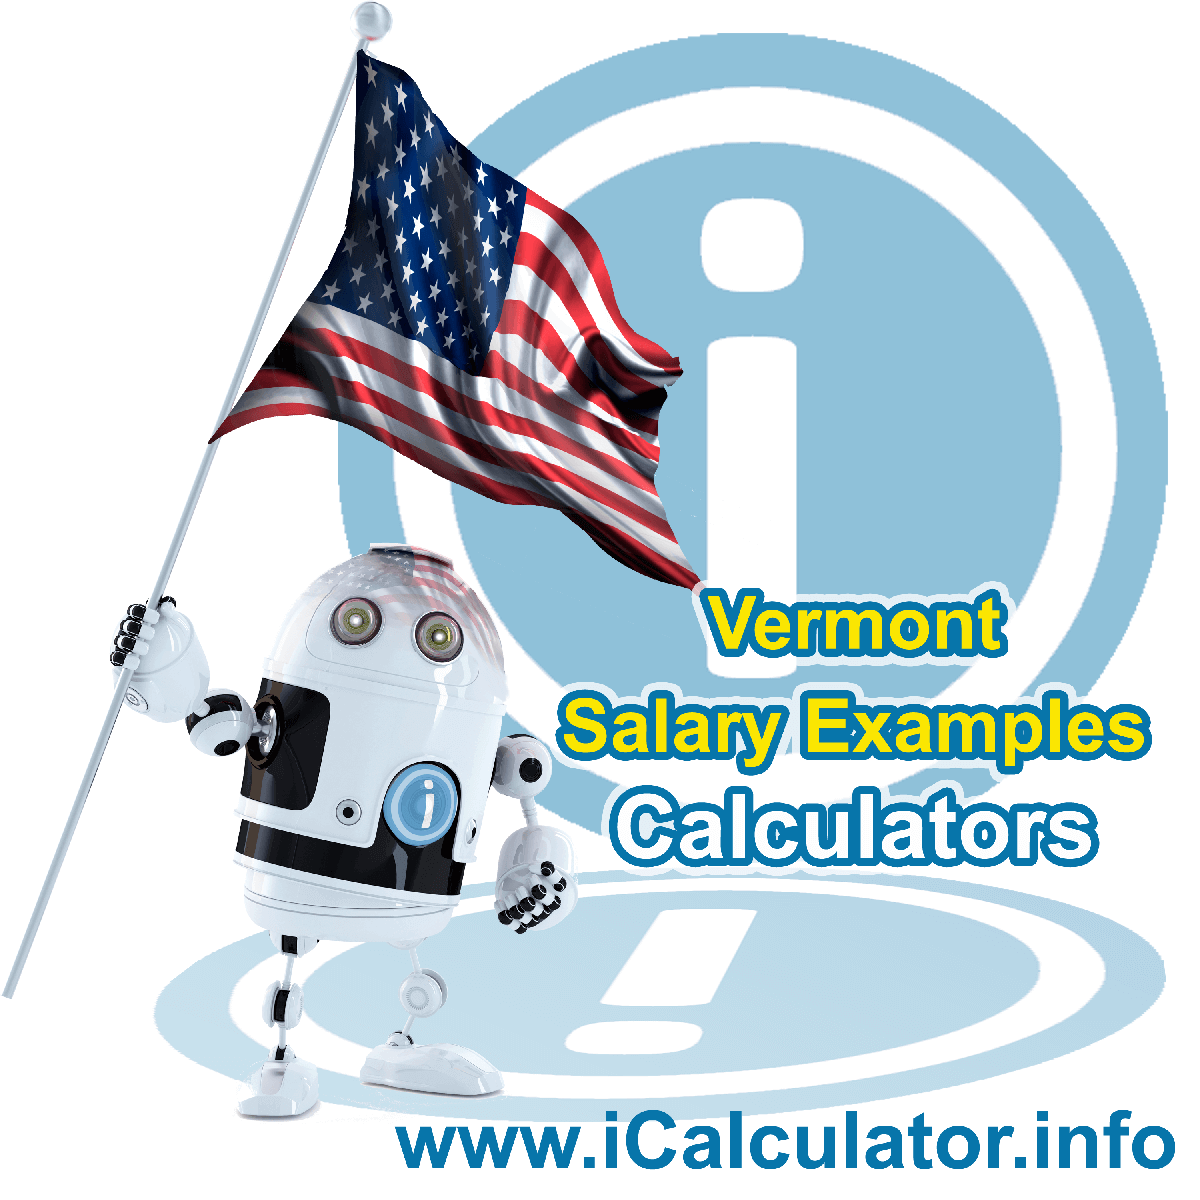 Vermont Salary Example for $145,000.00 in 2021 | iCalculator | $145,000.00 salary example for employee and employer paying Vermont State tincome taxes. Detailed salary after tax calculation including Vermont State Tax, Federal State Tax, Medicare Deductions, Social Security, Capital Gains and other income tax and salary deductions complete with supporting Vermont state tax tables